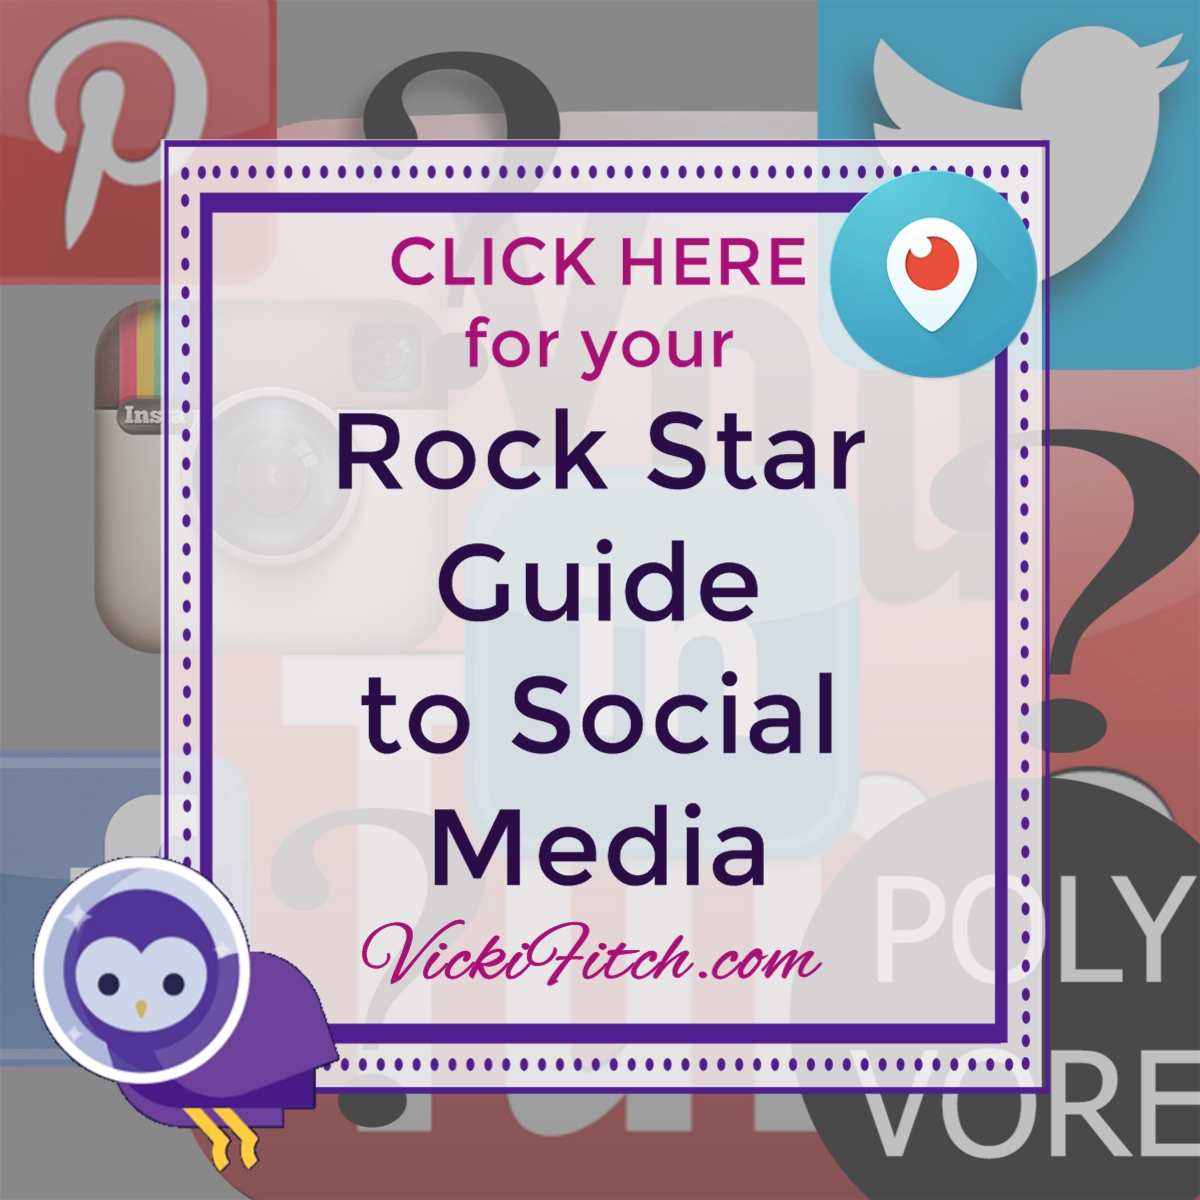 Rock Star Guide to Social Media by Vicki Fitch